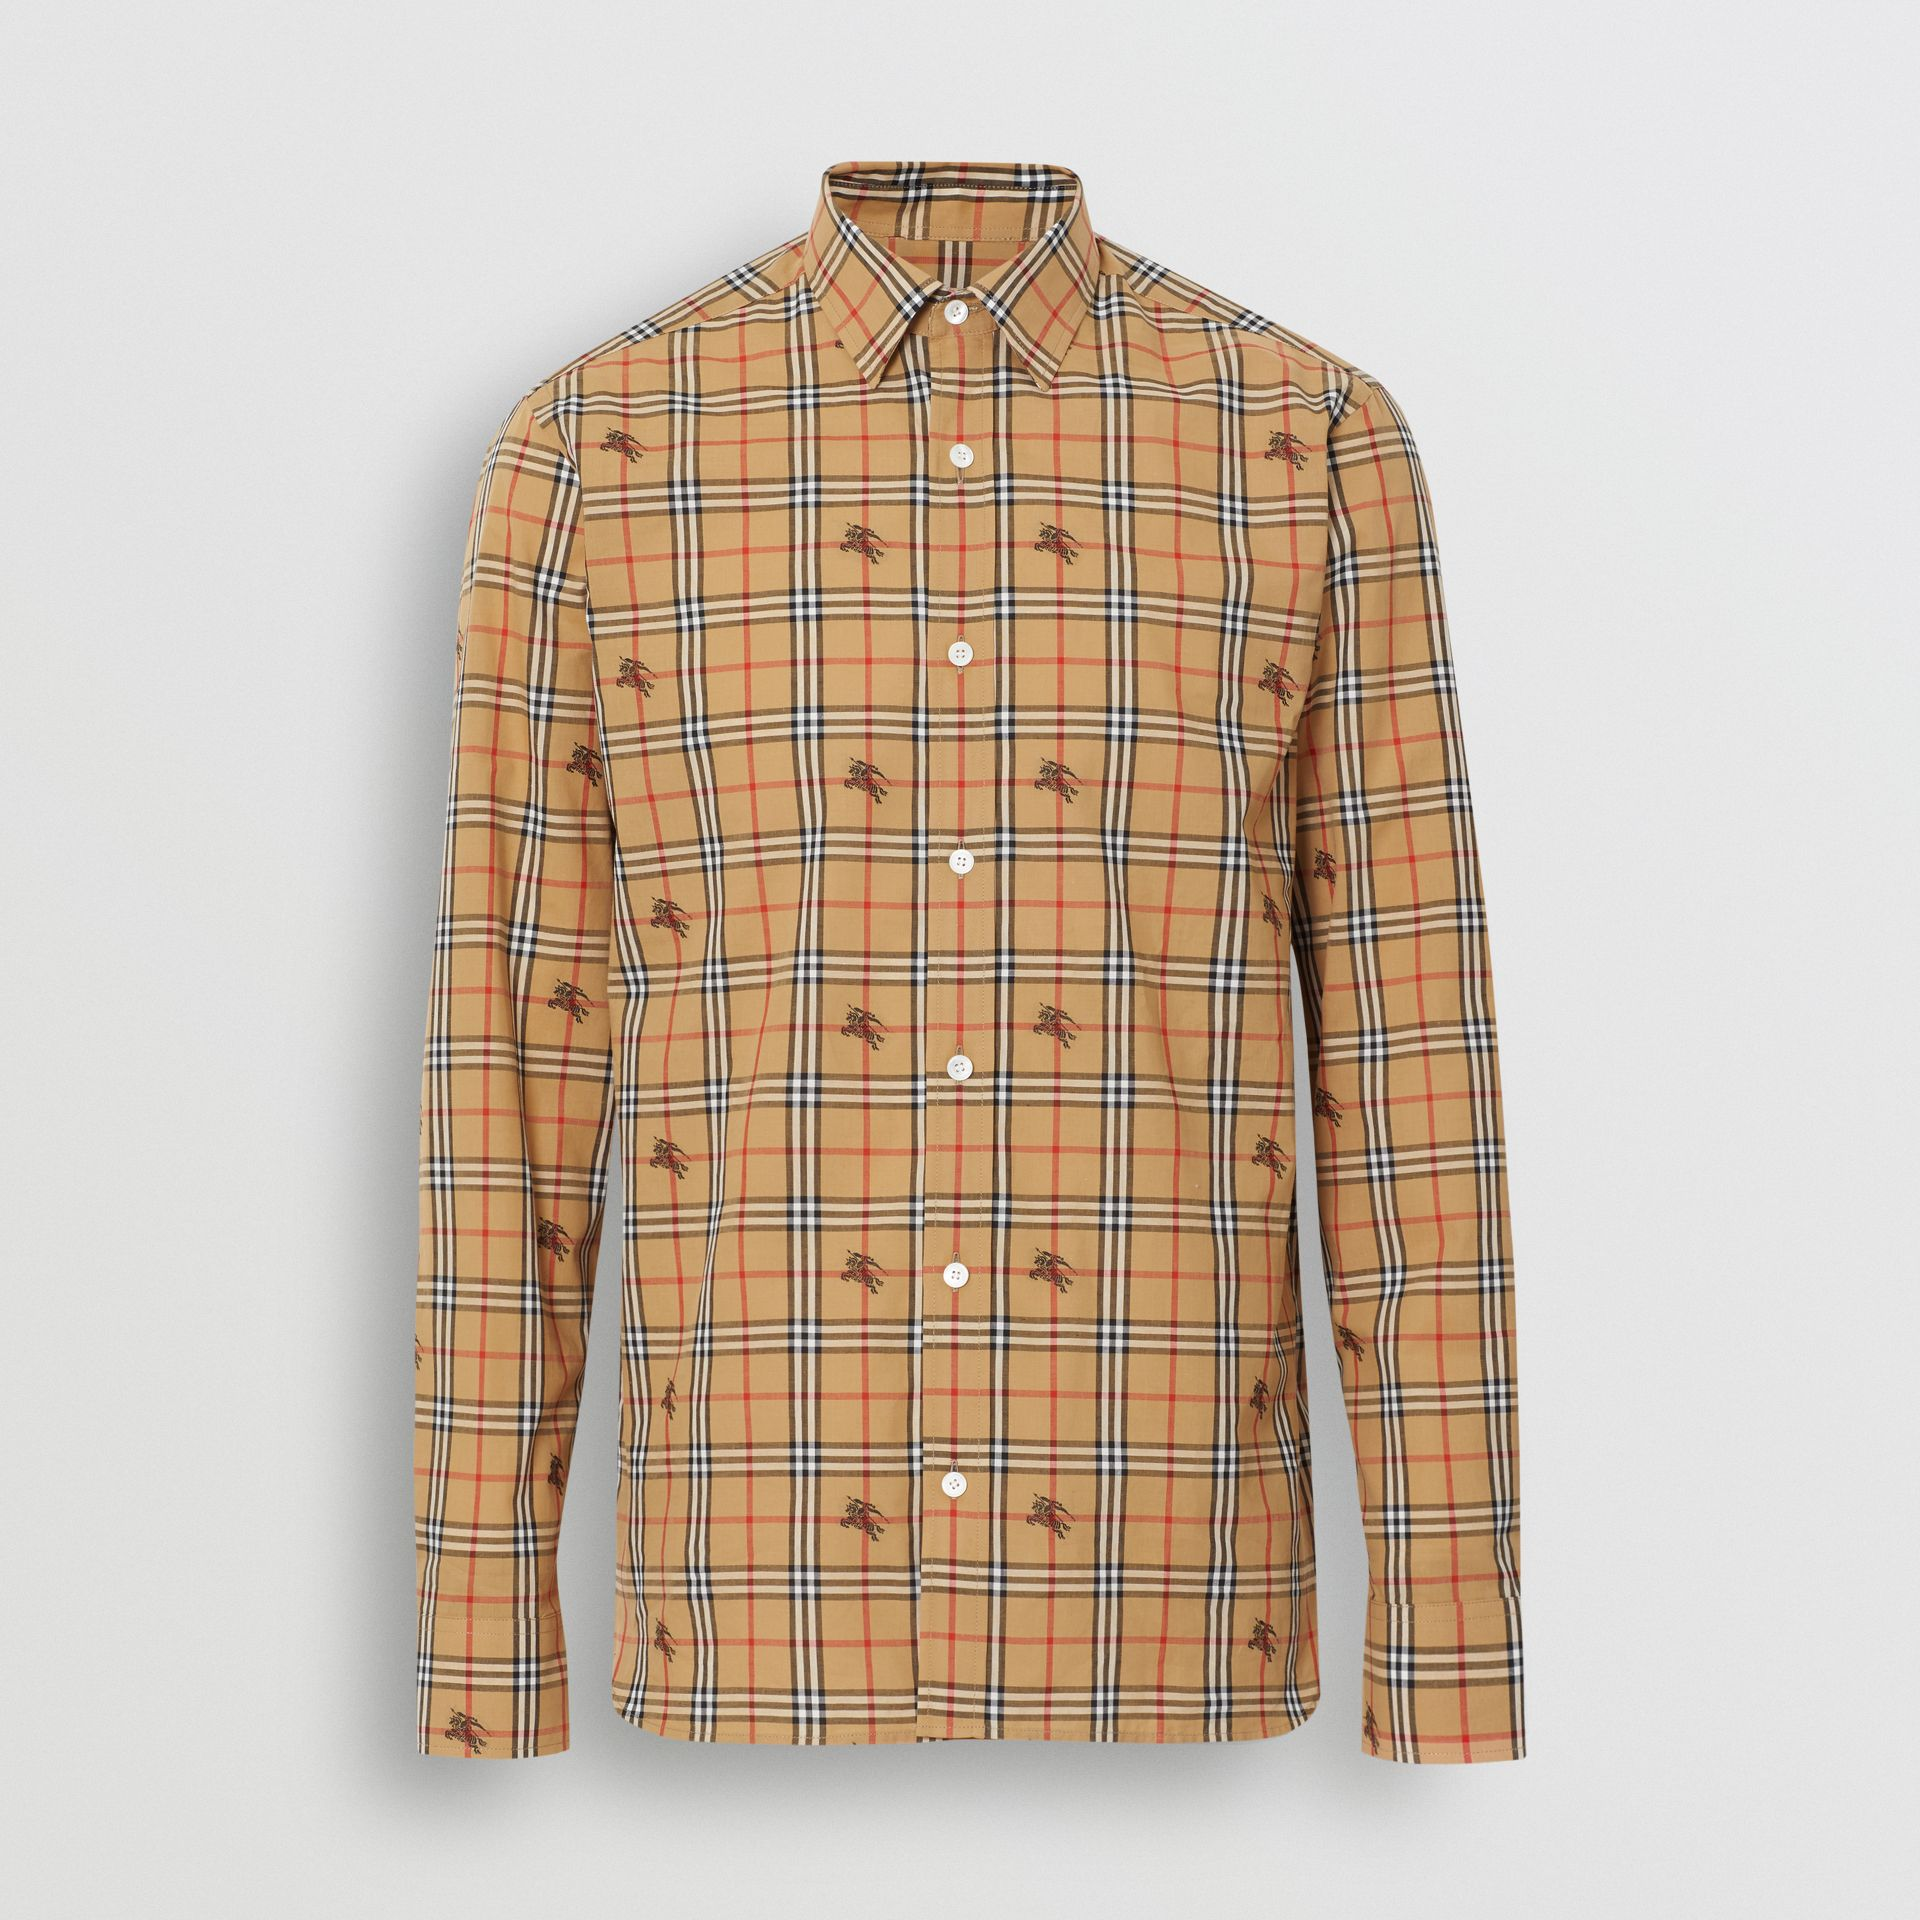 Equestrian Knight Check Cotton Shirt in Camel - Men | Burberry United Kingdom - gallery image 3